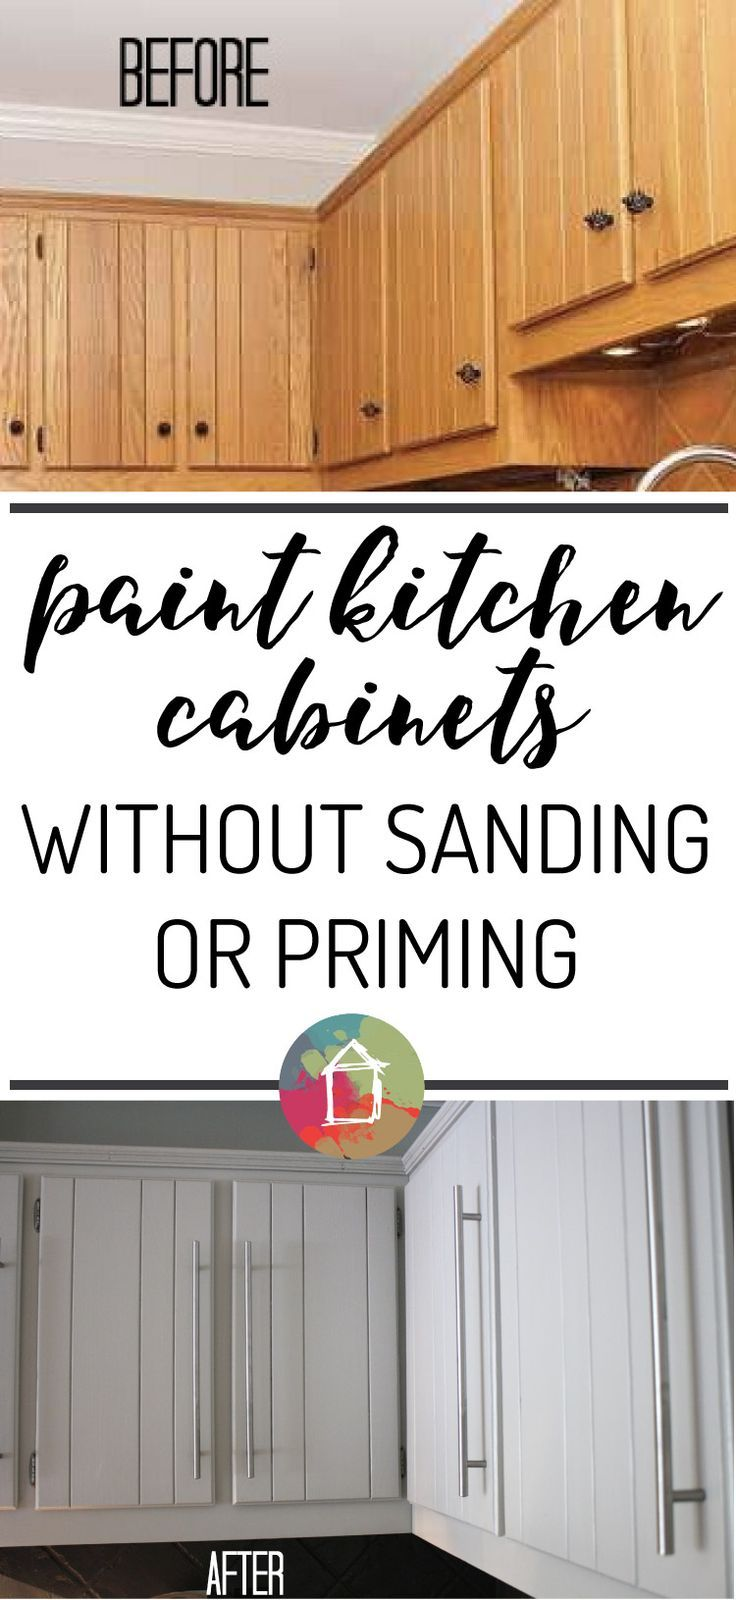 307 best painted cabinets images on pinterest kitchen kitchen